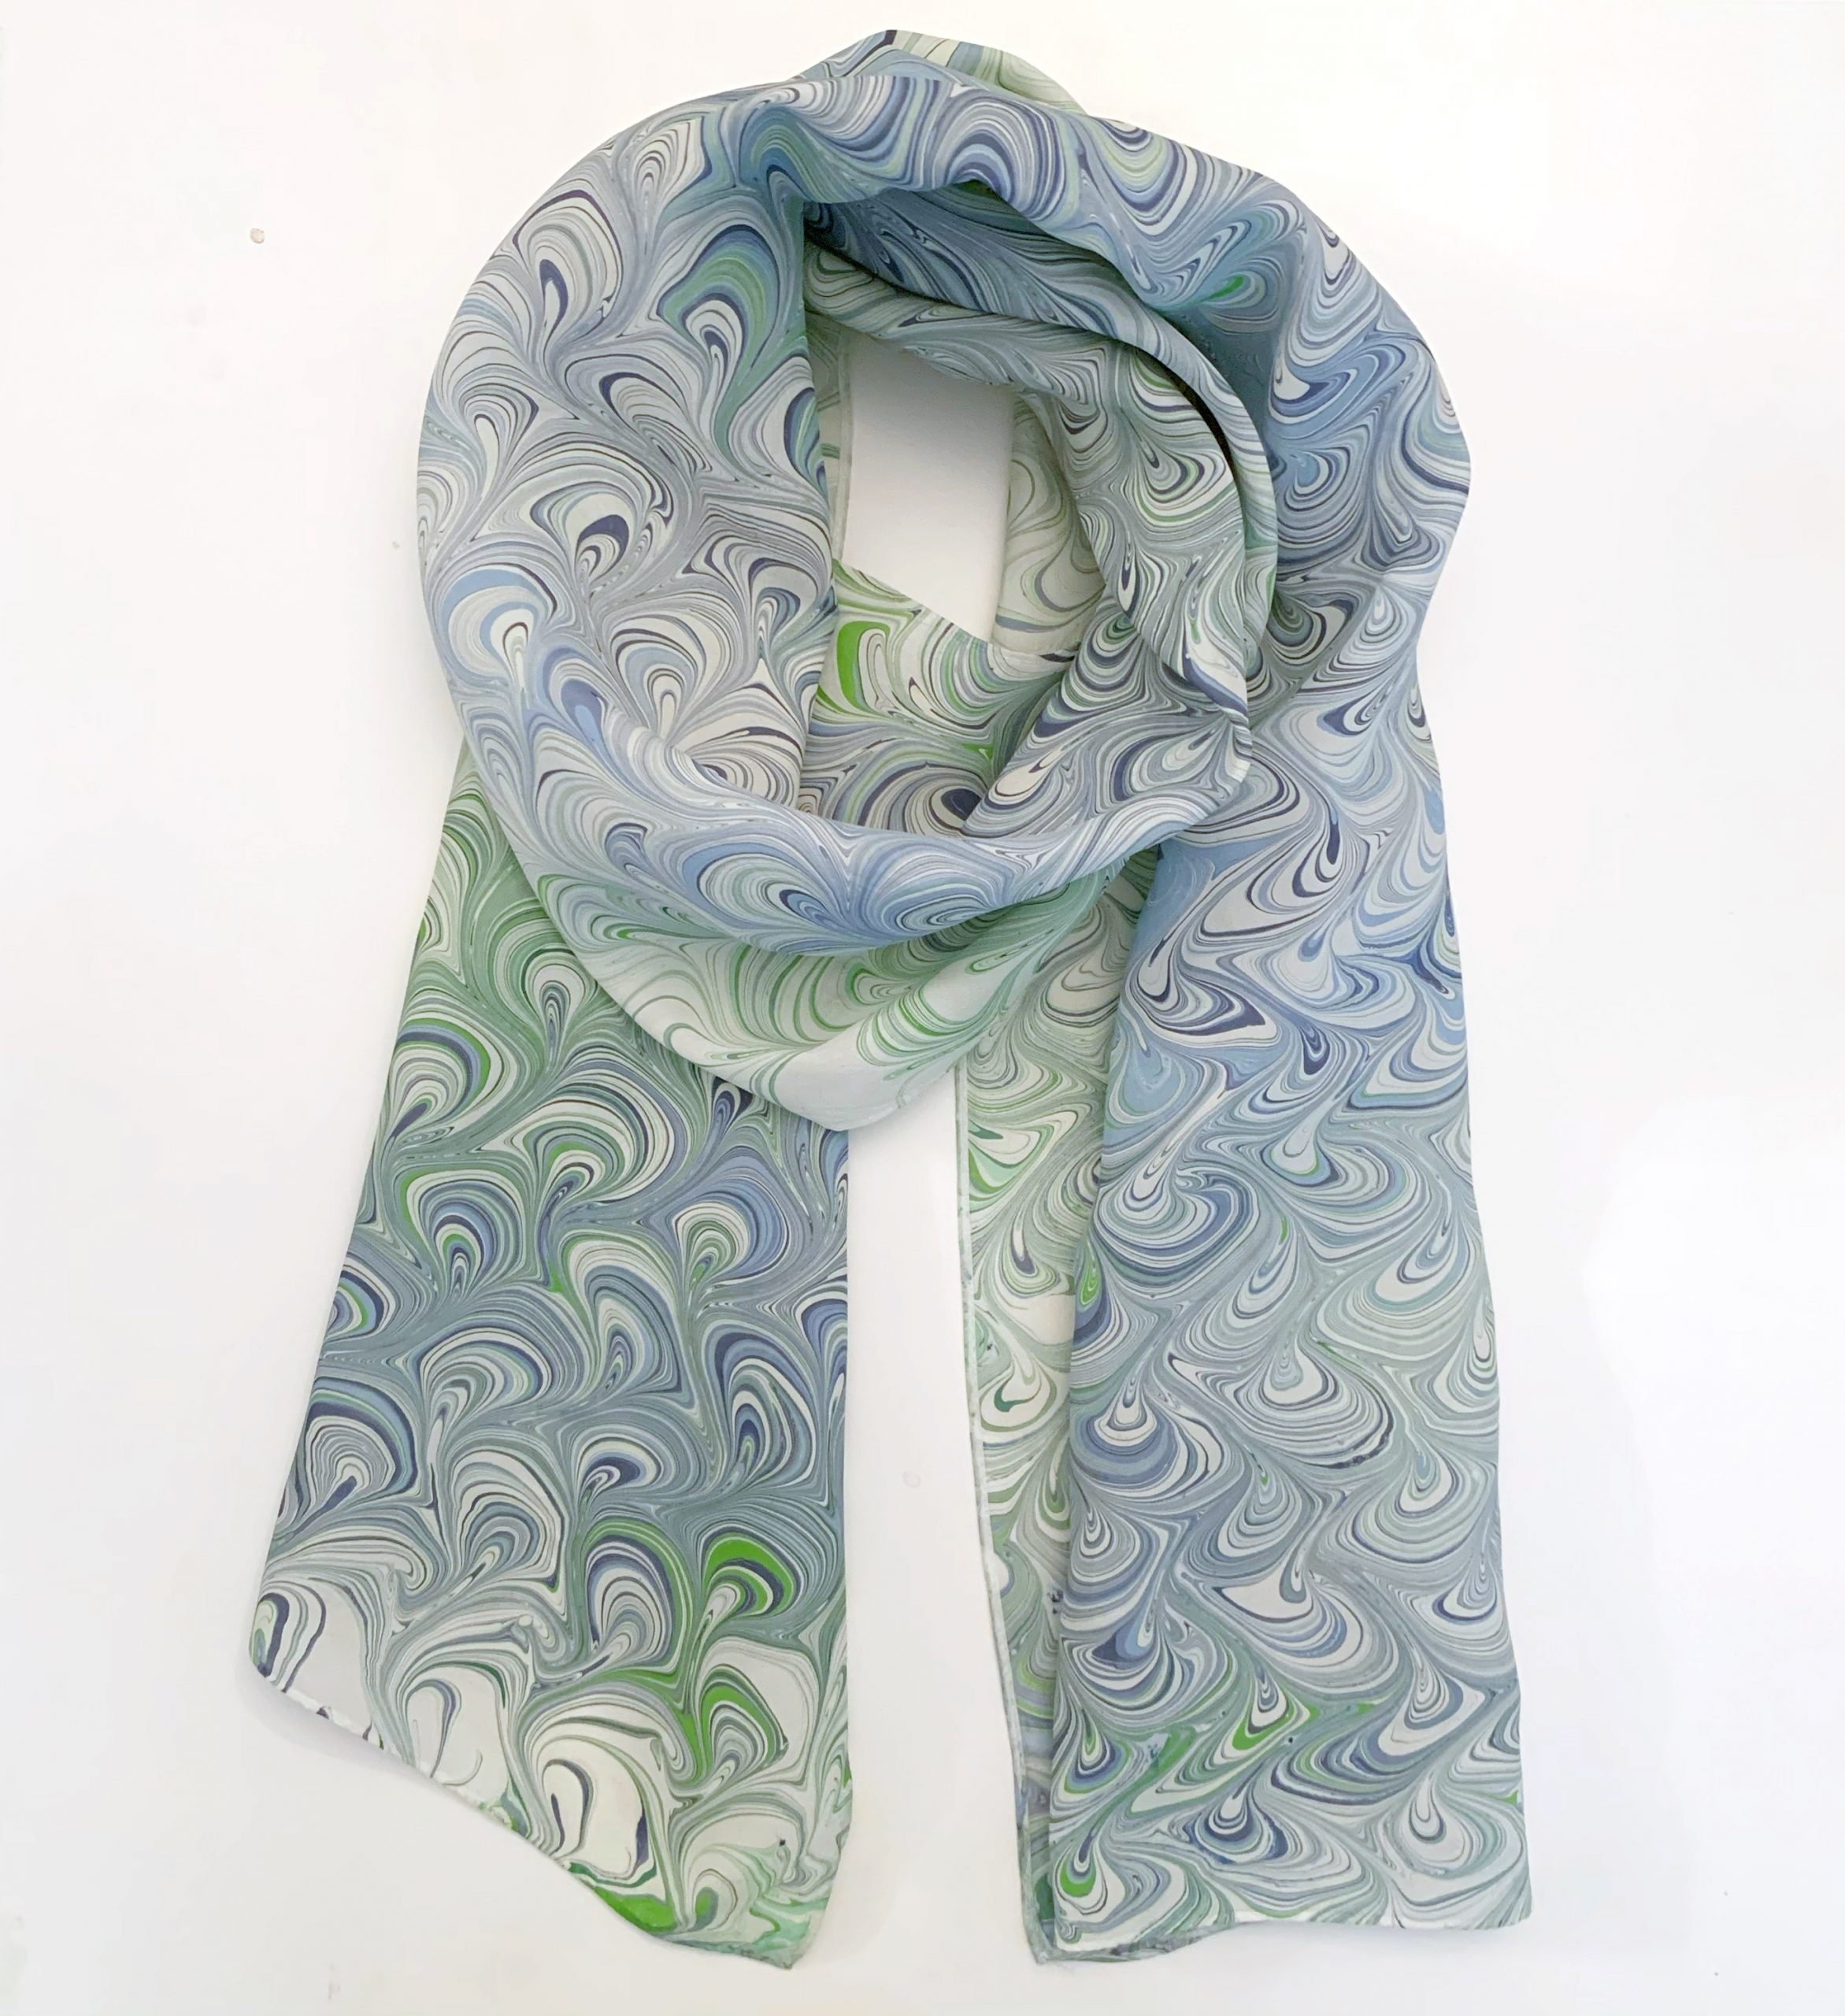 Water marbled scarf with blue and green